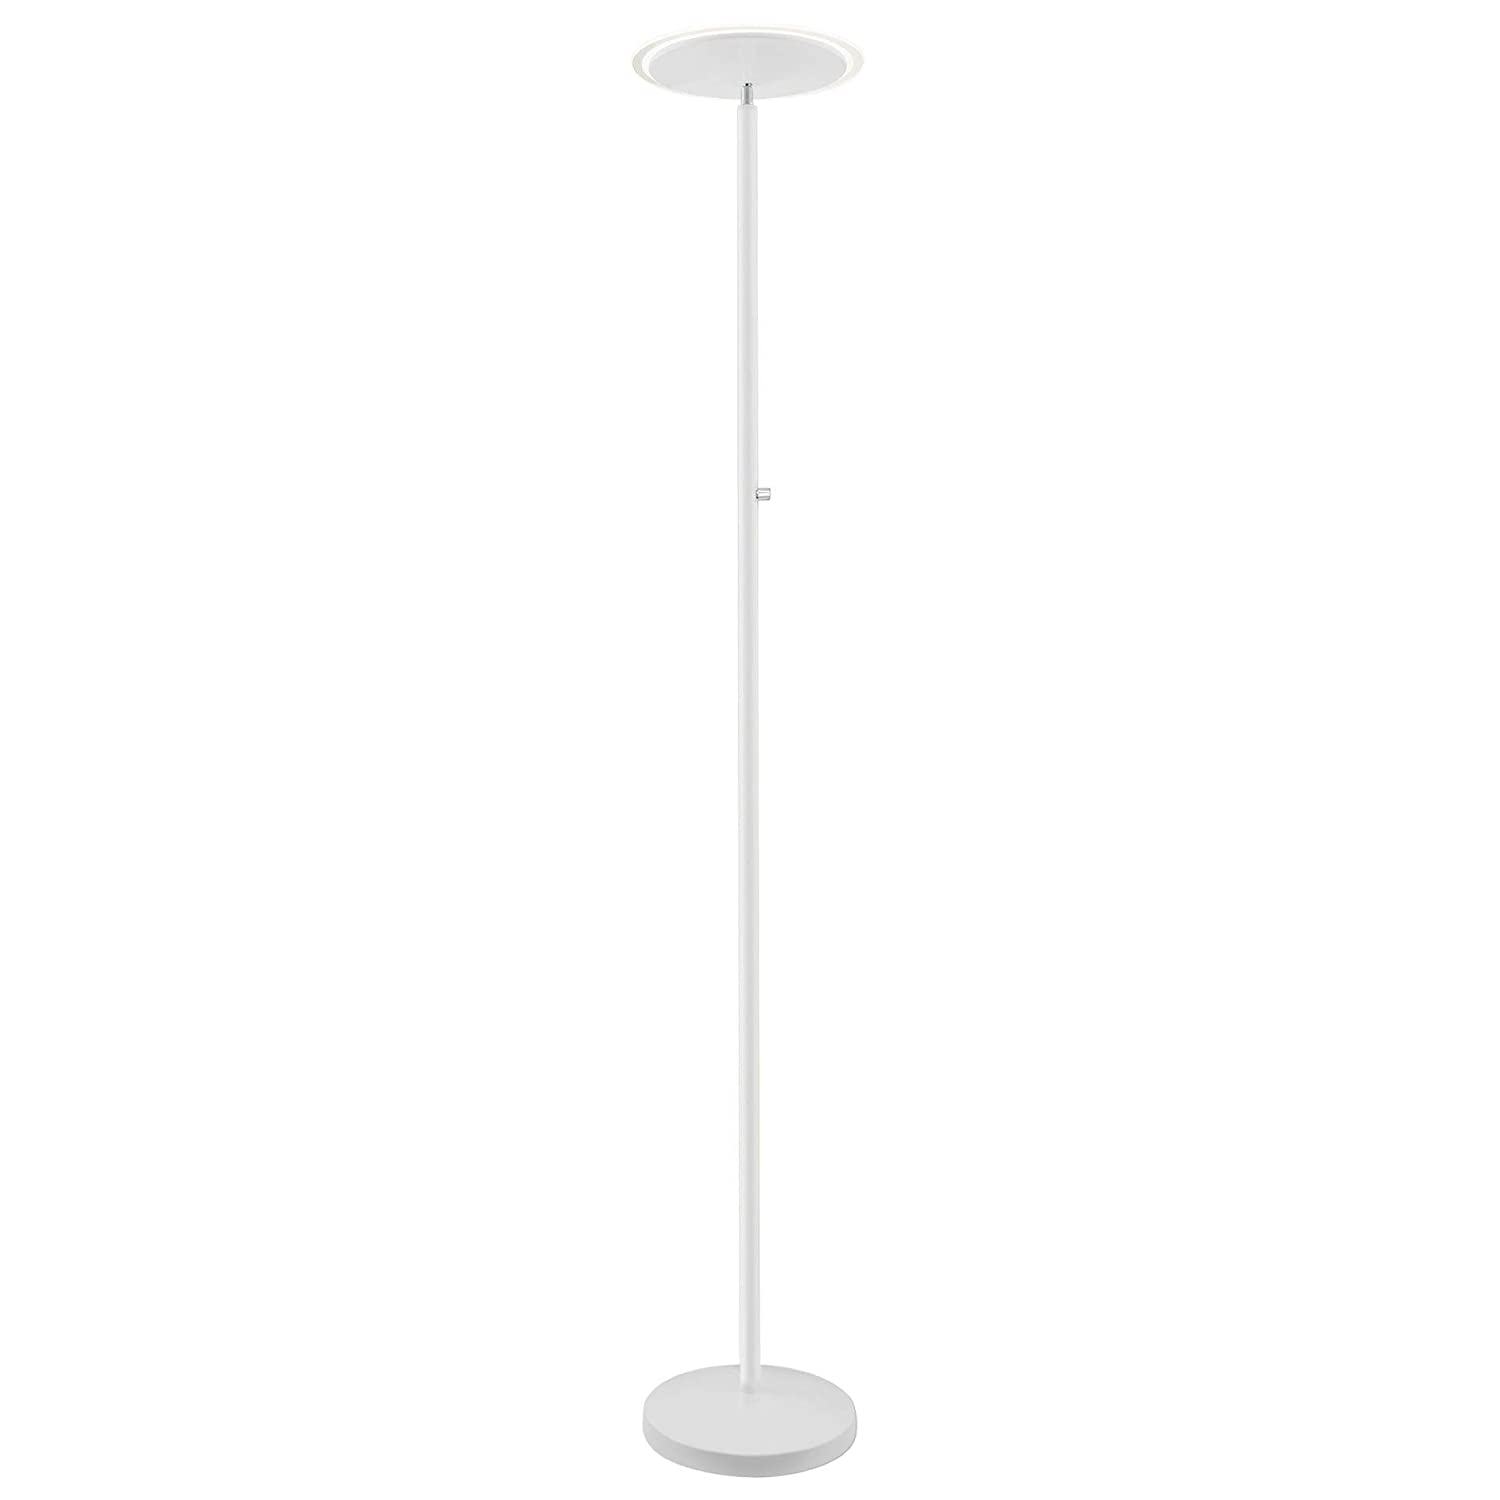 """Kira Home Horizon 70"""" Modern LED Torchiere Floor Lamp (36W, 300W eq.), Glass Diffuser, Dimmable, Timer and Wall Switch Compatible, Adjustable Head, 3000k Warm White Light, White Finish"""